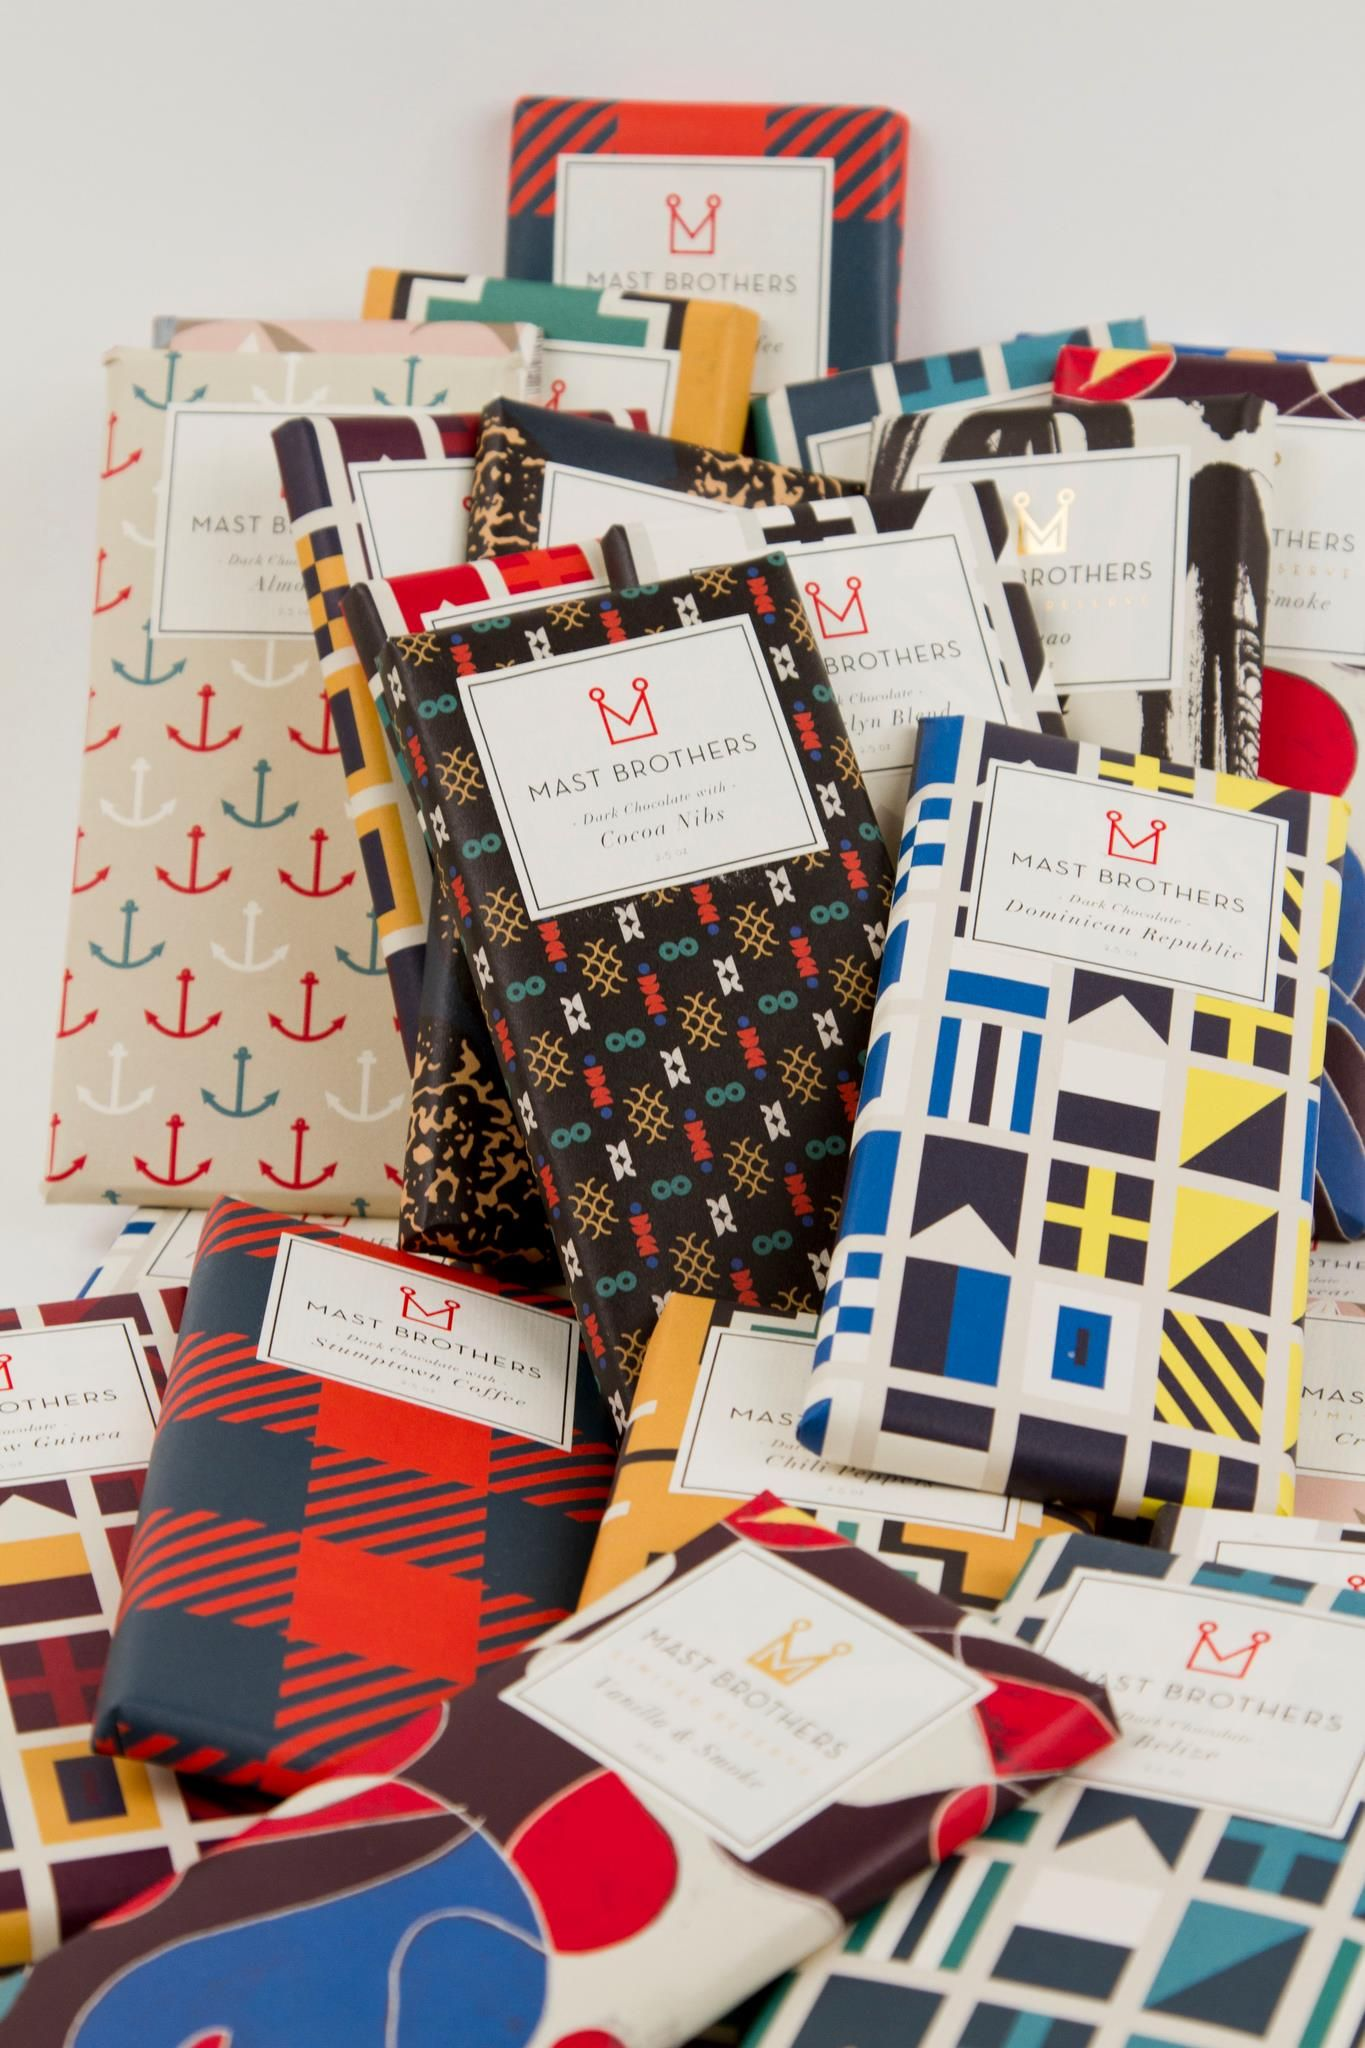 Mast Brothers - has chocolate wrapping ever been more appealing ...